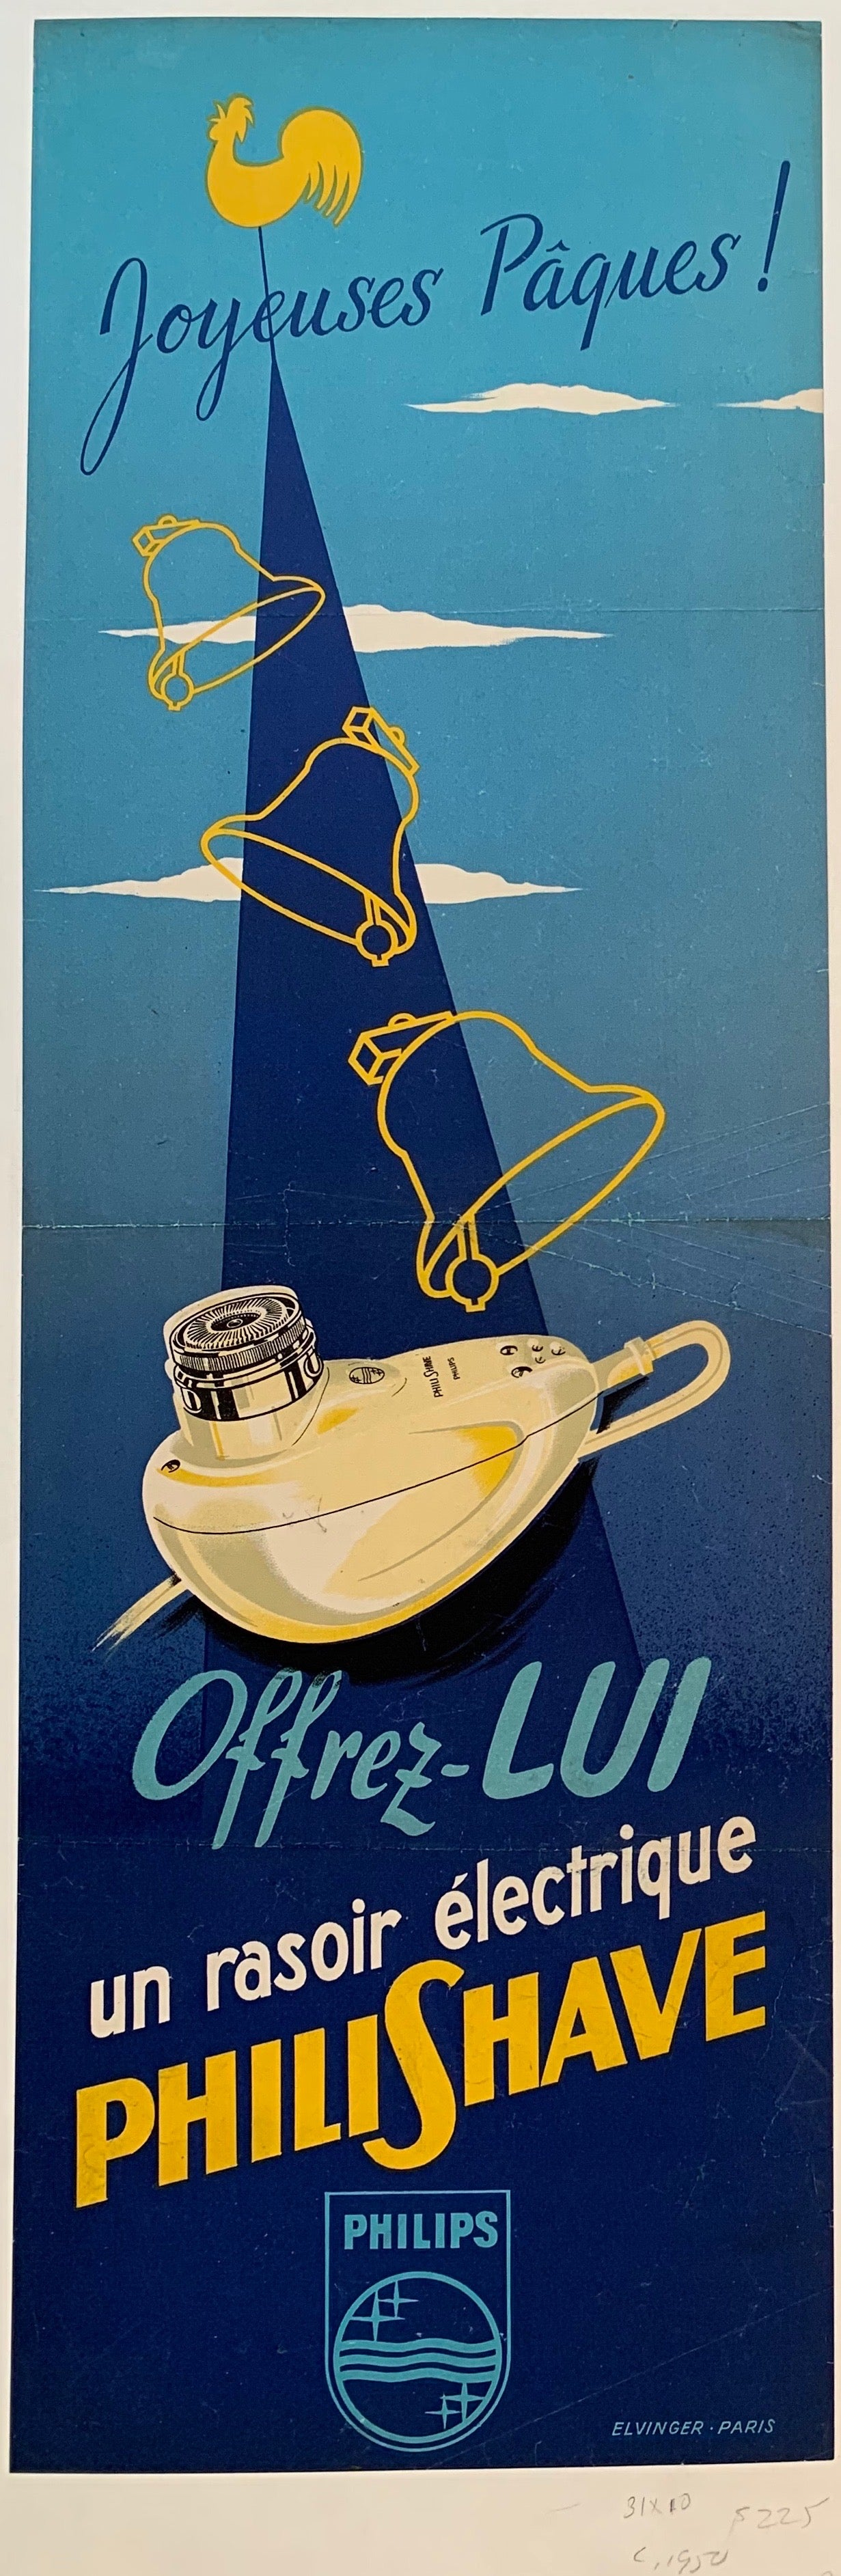 Phili Shave Razor Advertisement